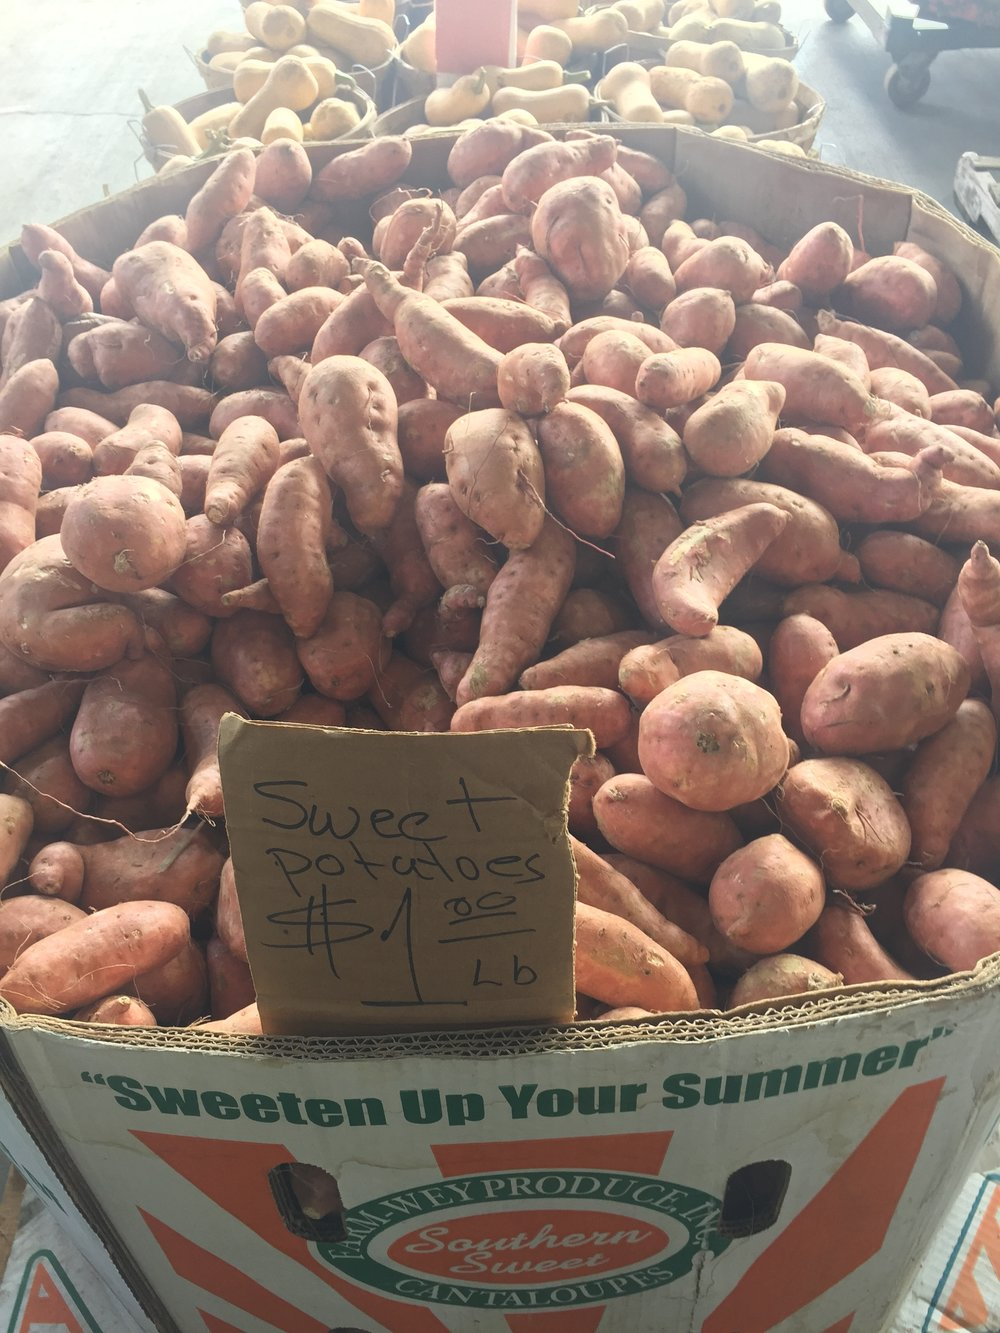 The sweetest potatoes from Smileys Farm